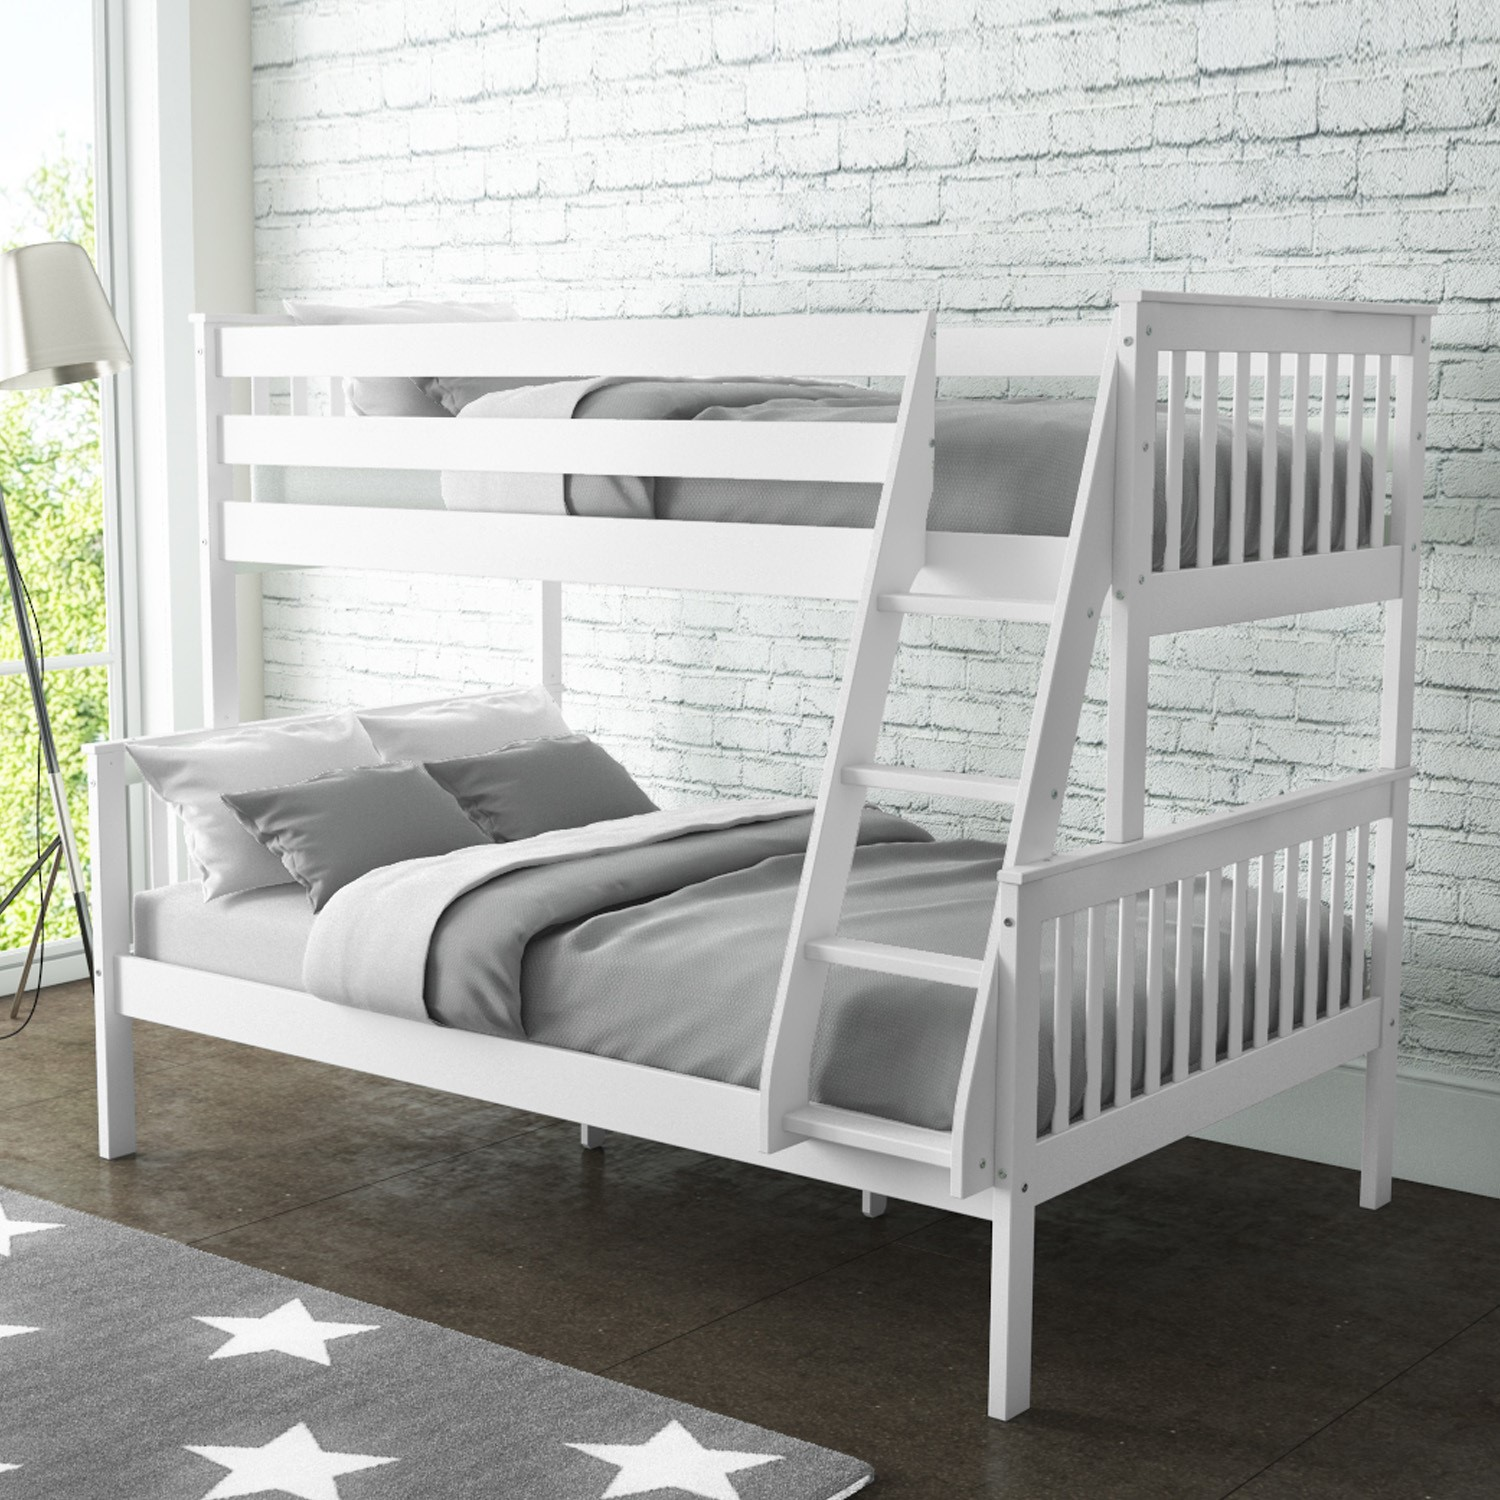 new high quality oxford triple bunk bed in white small. Black Bedroom Furniture Sets. Home Design Ideas